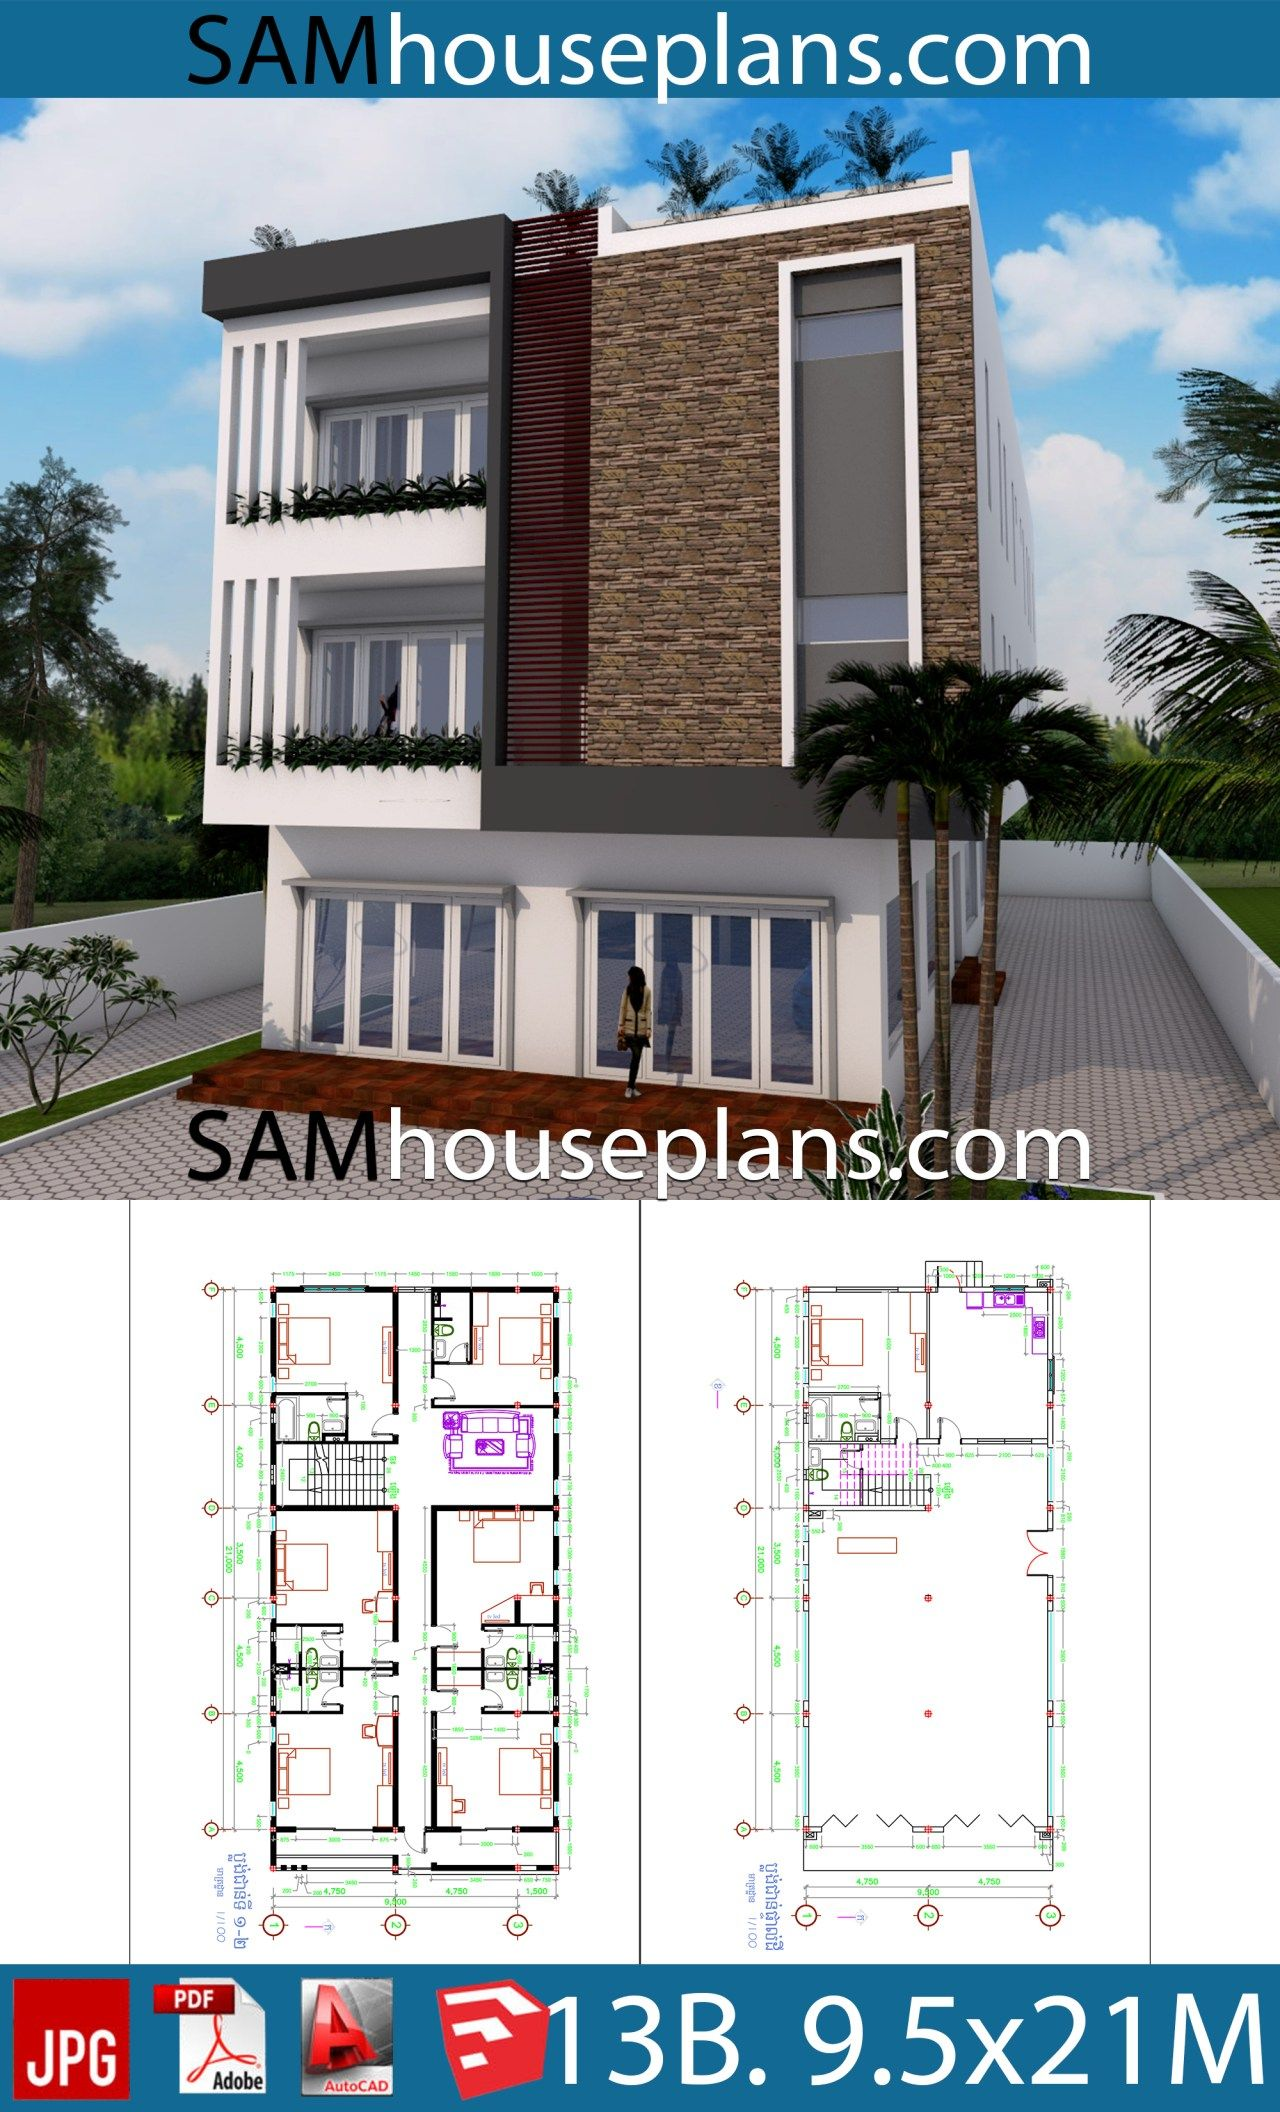 House Plans 9 5x21 With 13 Bedrooms Sam House Plans House Plans House Home Design Plan